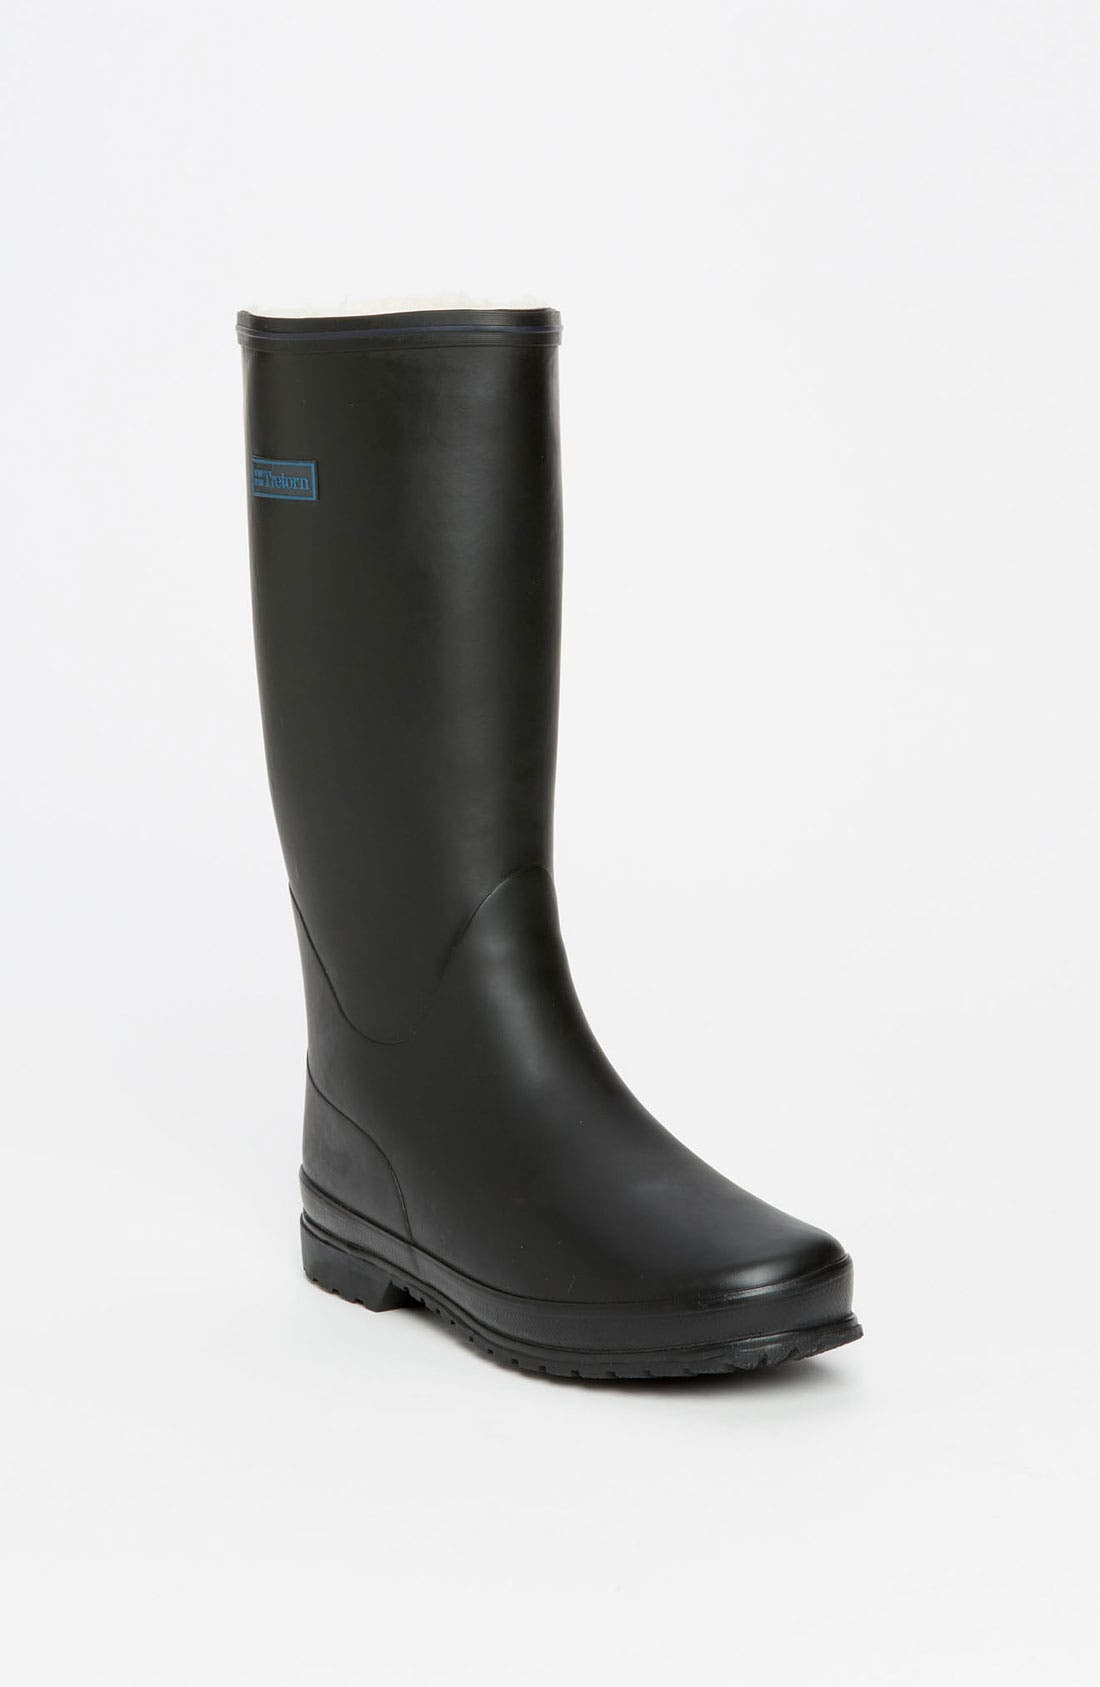 Main Image - Tretorn 'Kelly Vinter' Rain Boot (Women)